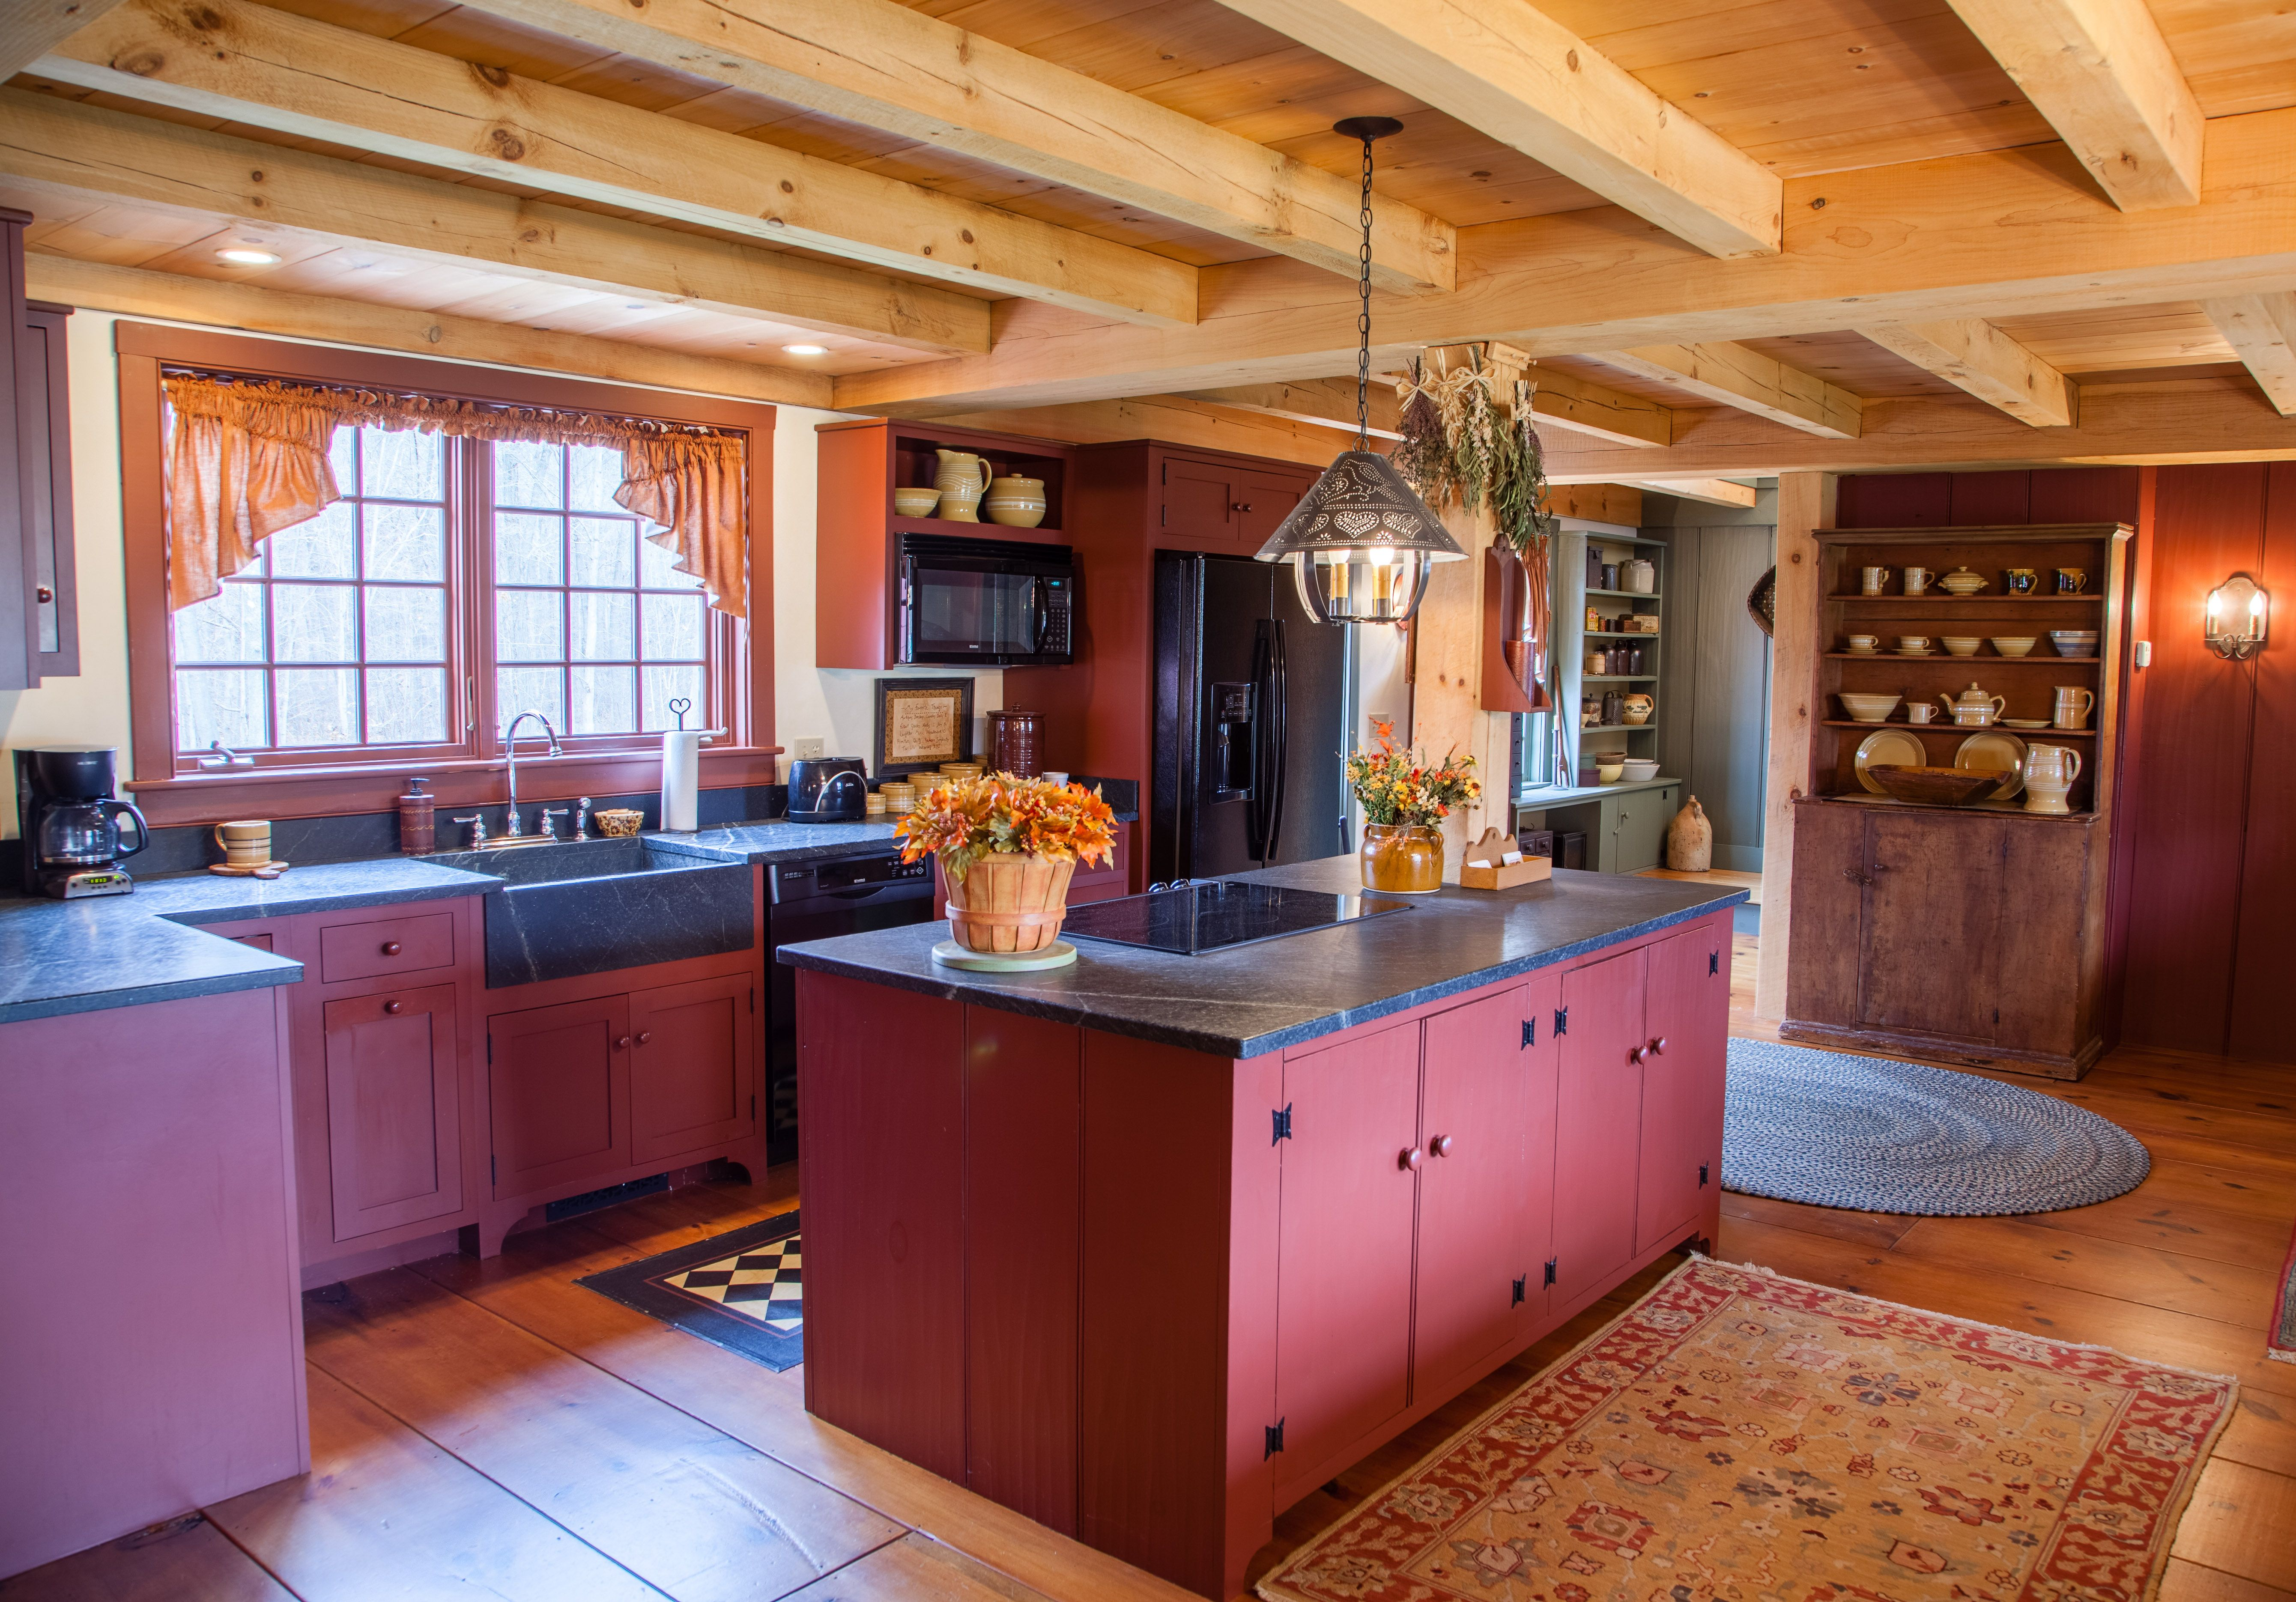 The Kitchen in our model home, with some beautiful